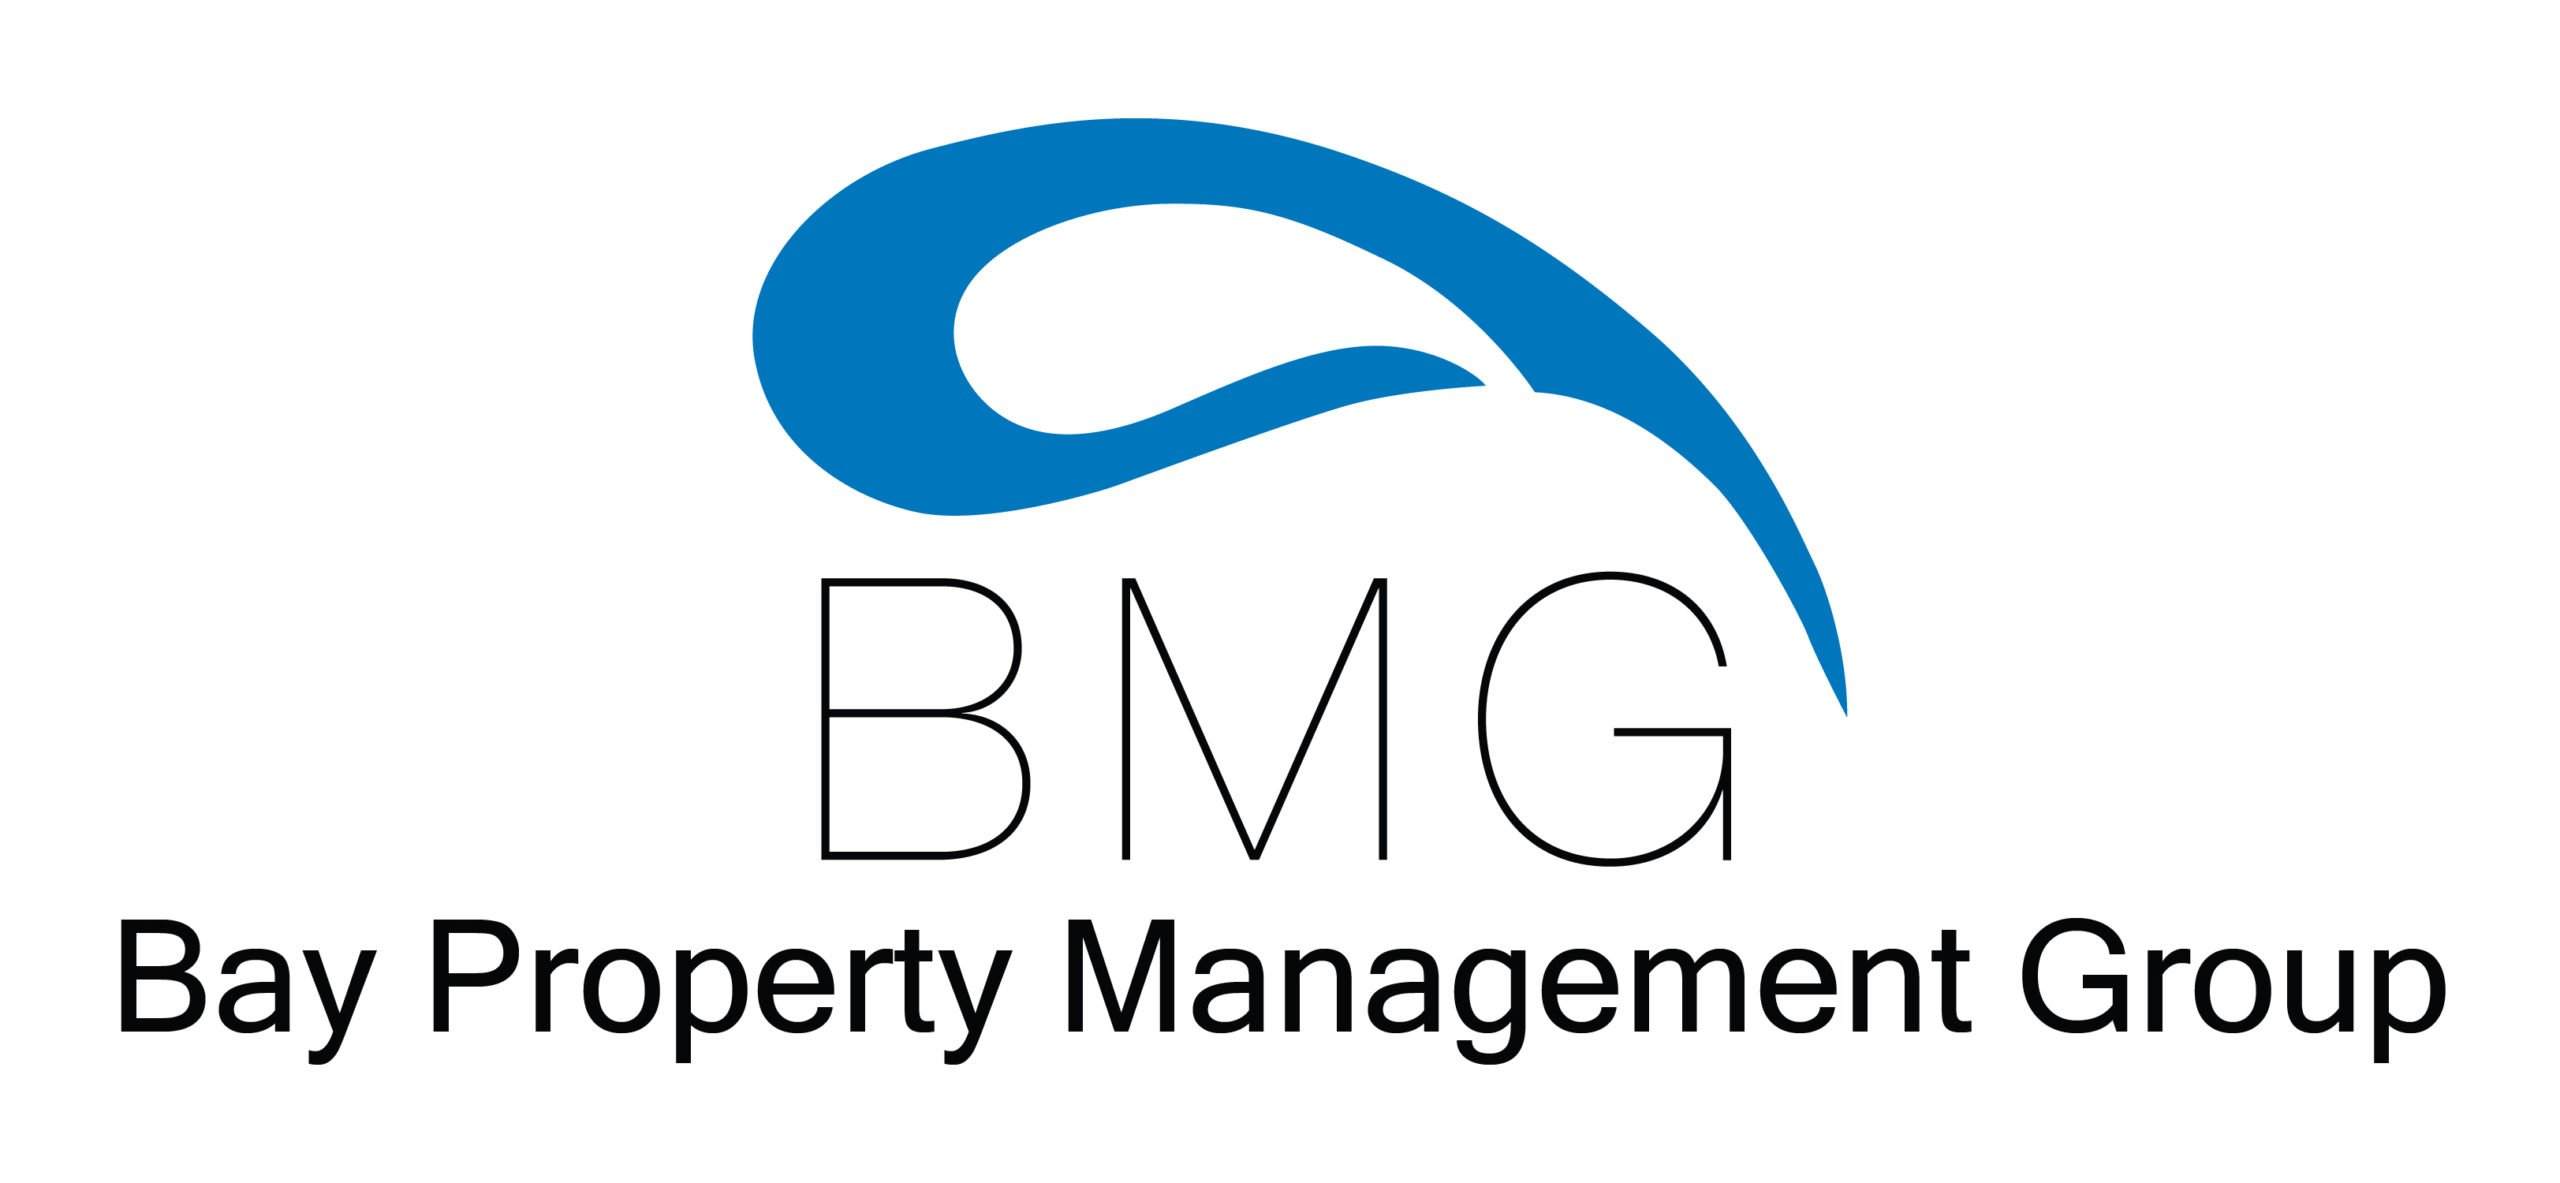 Bay Property Management Group